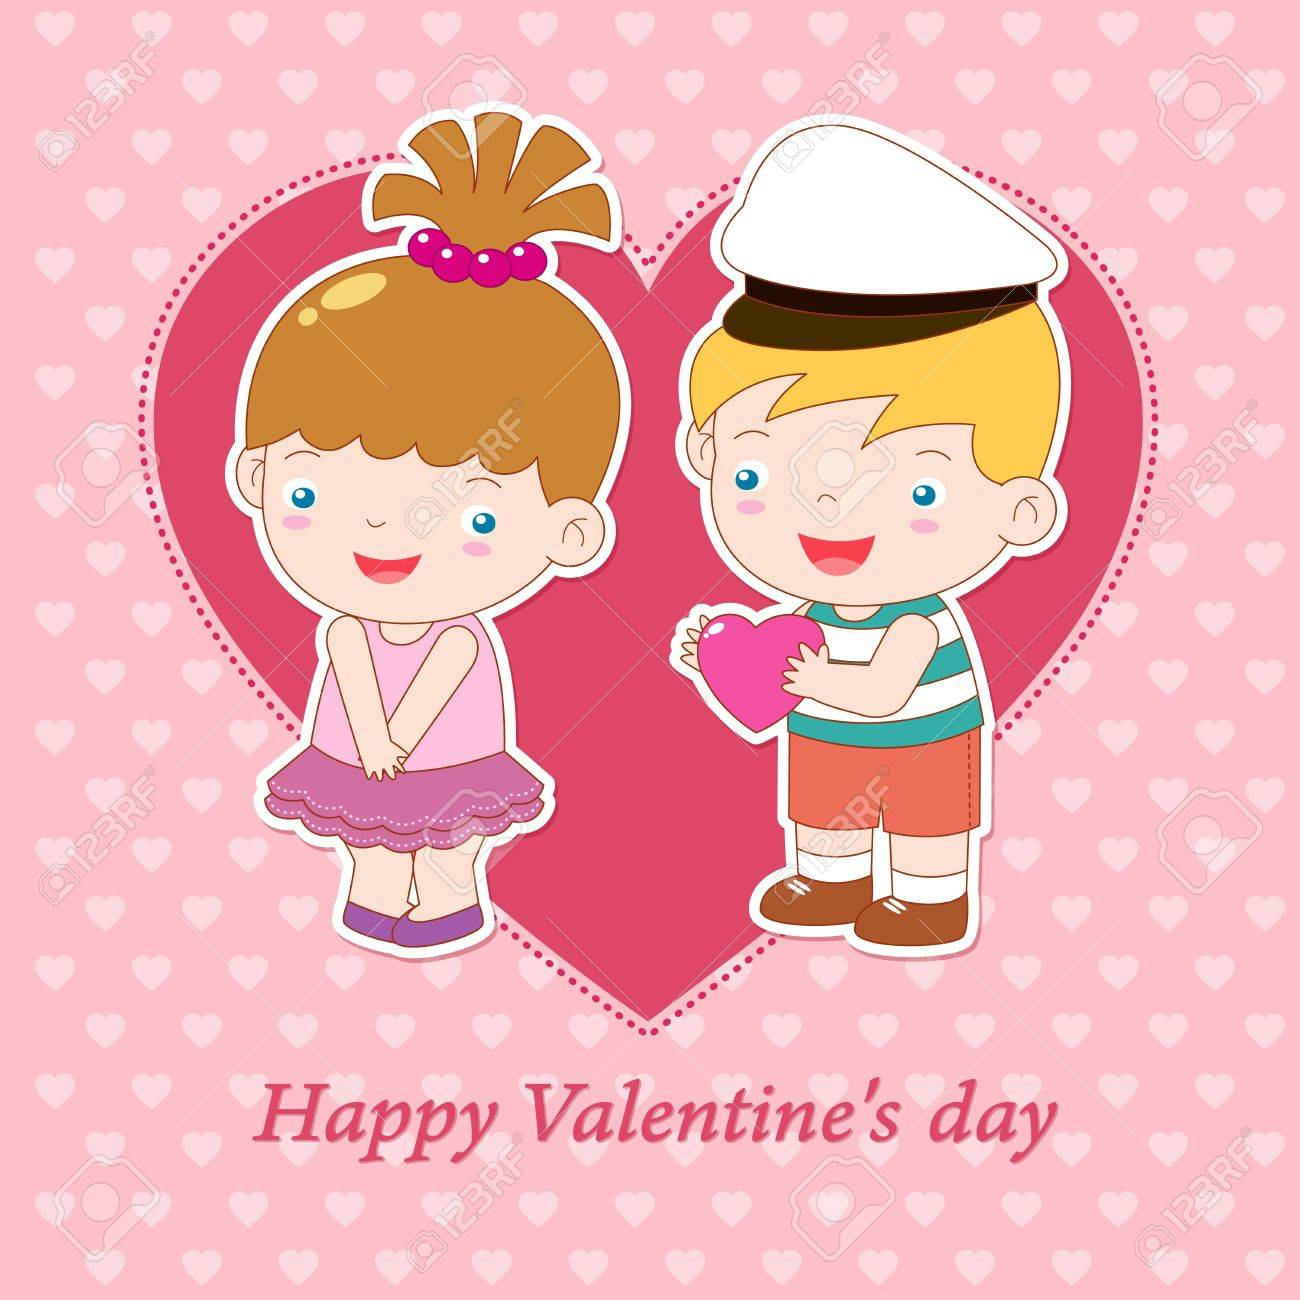 illustration of boy and girl on heart background Valentine day concept Stock Vector - 15834349